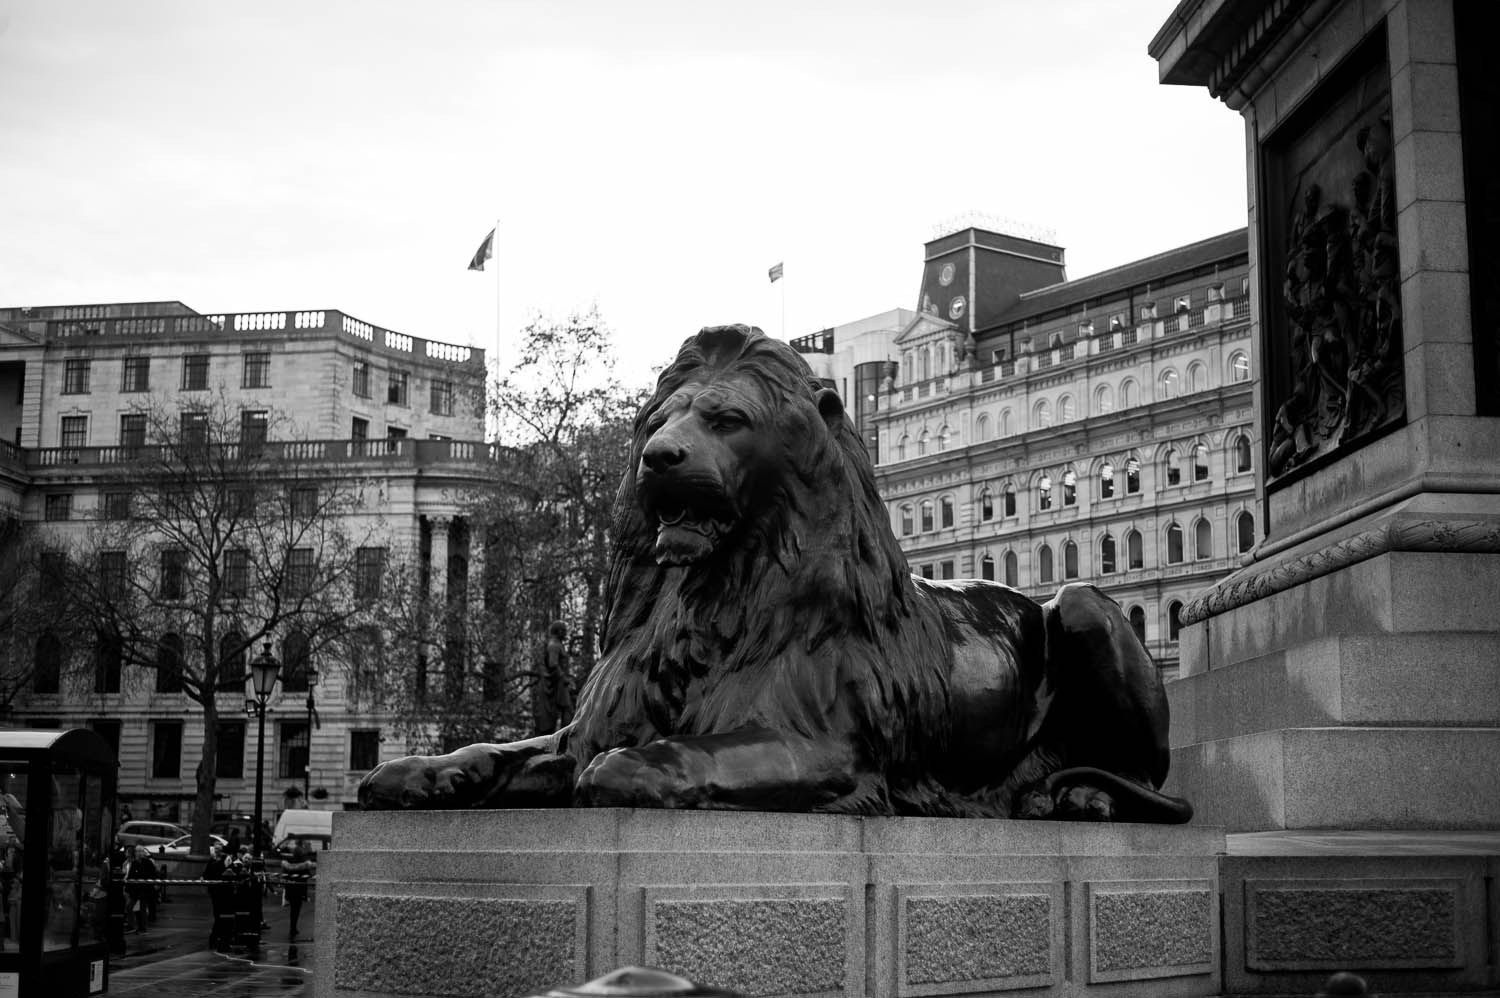 A lion statue in London